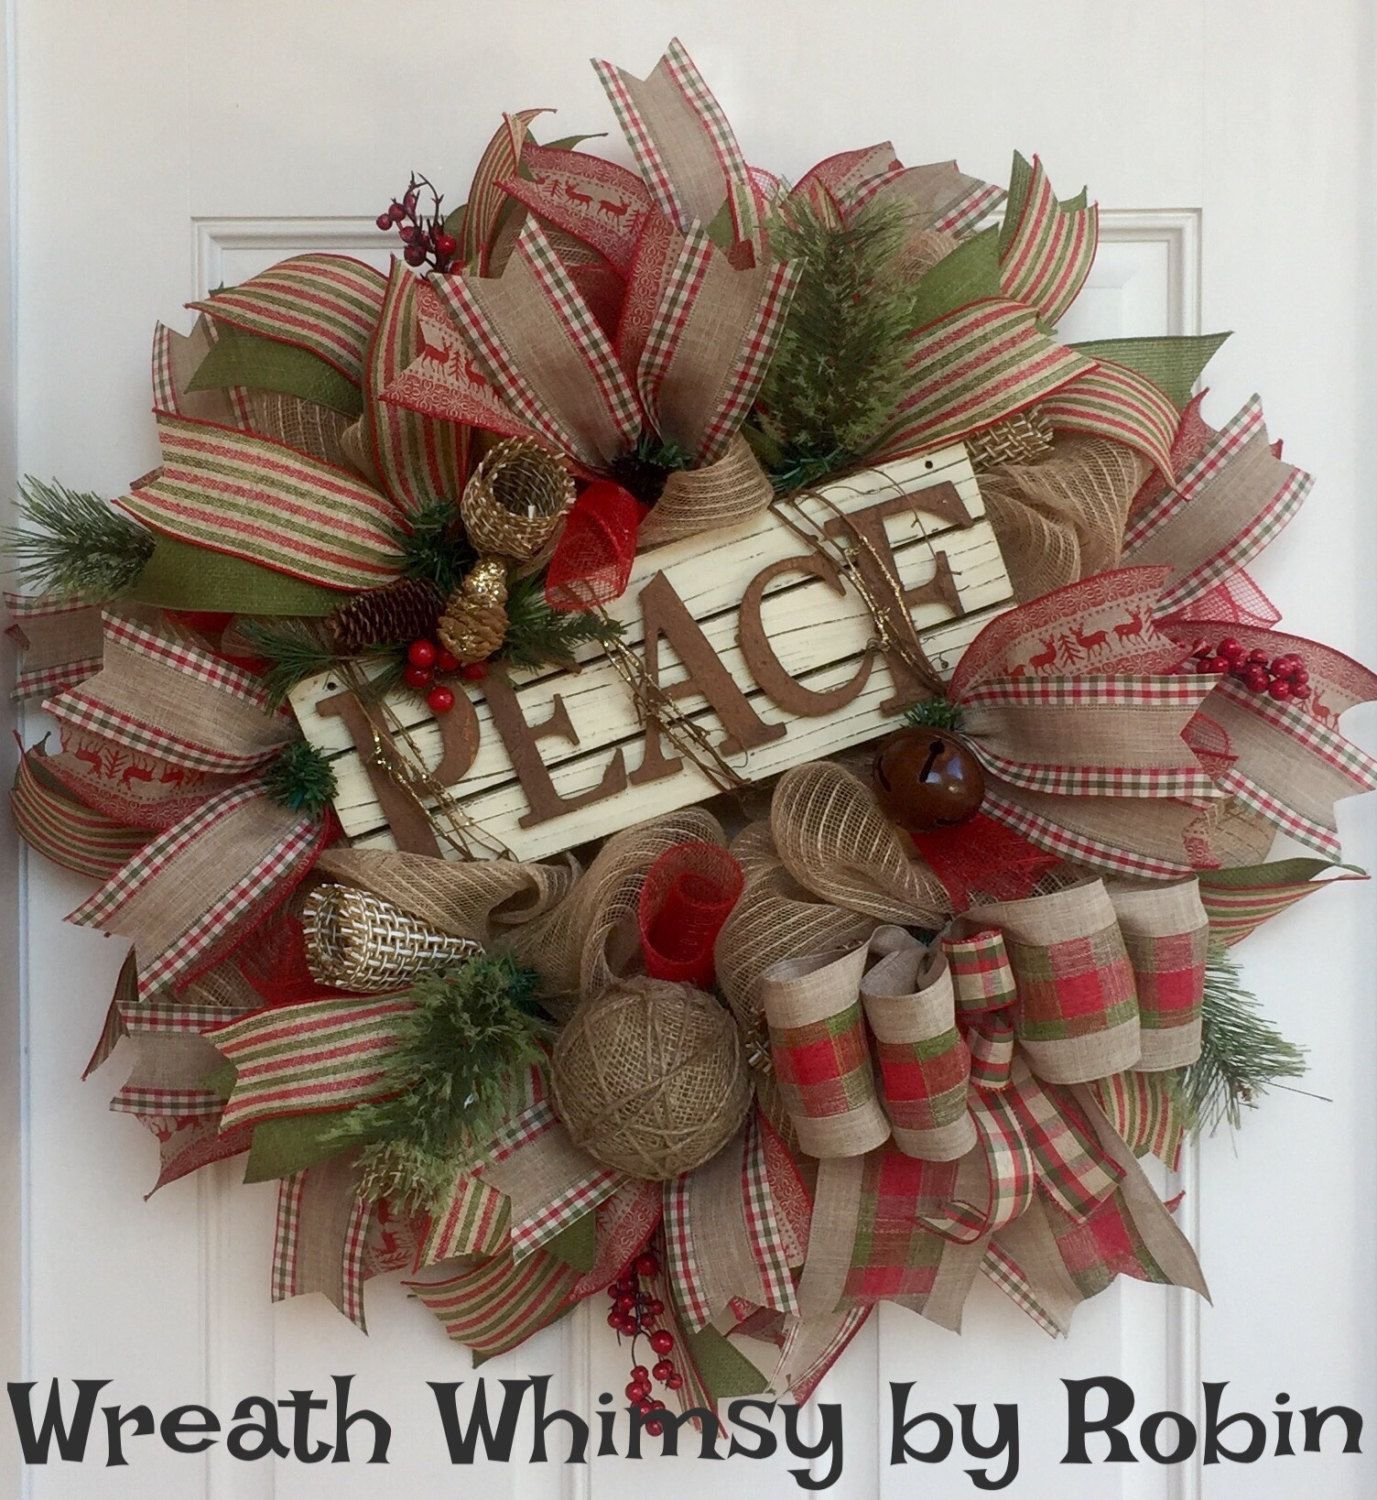 Rustic Jute Mesh Holiday Wreath with Wood & Metal Peace Sign in Tan, Red and